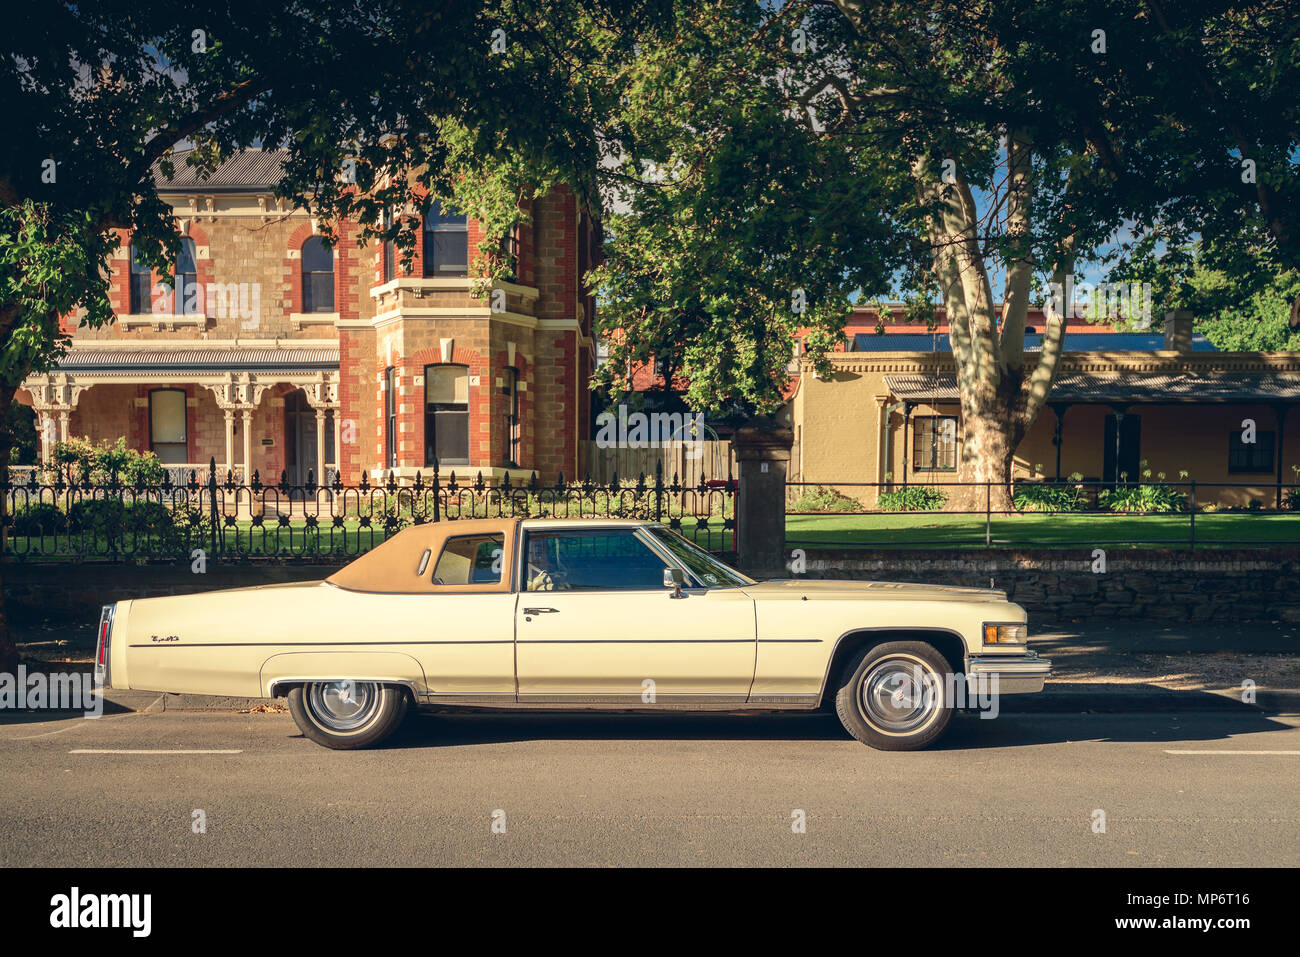 Adelaide, Australia - January 18, 2015: Legendary American Cadillac de Ville car parked in Adelaide city centre on the street on a bright day - Stock Image